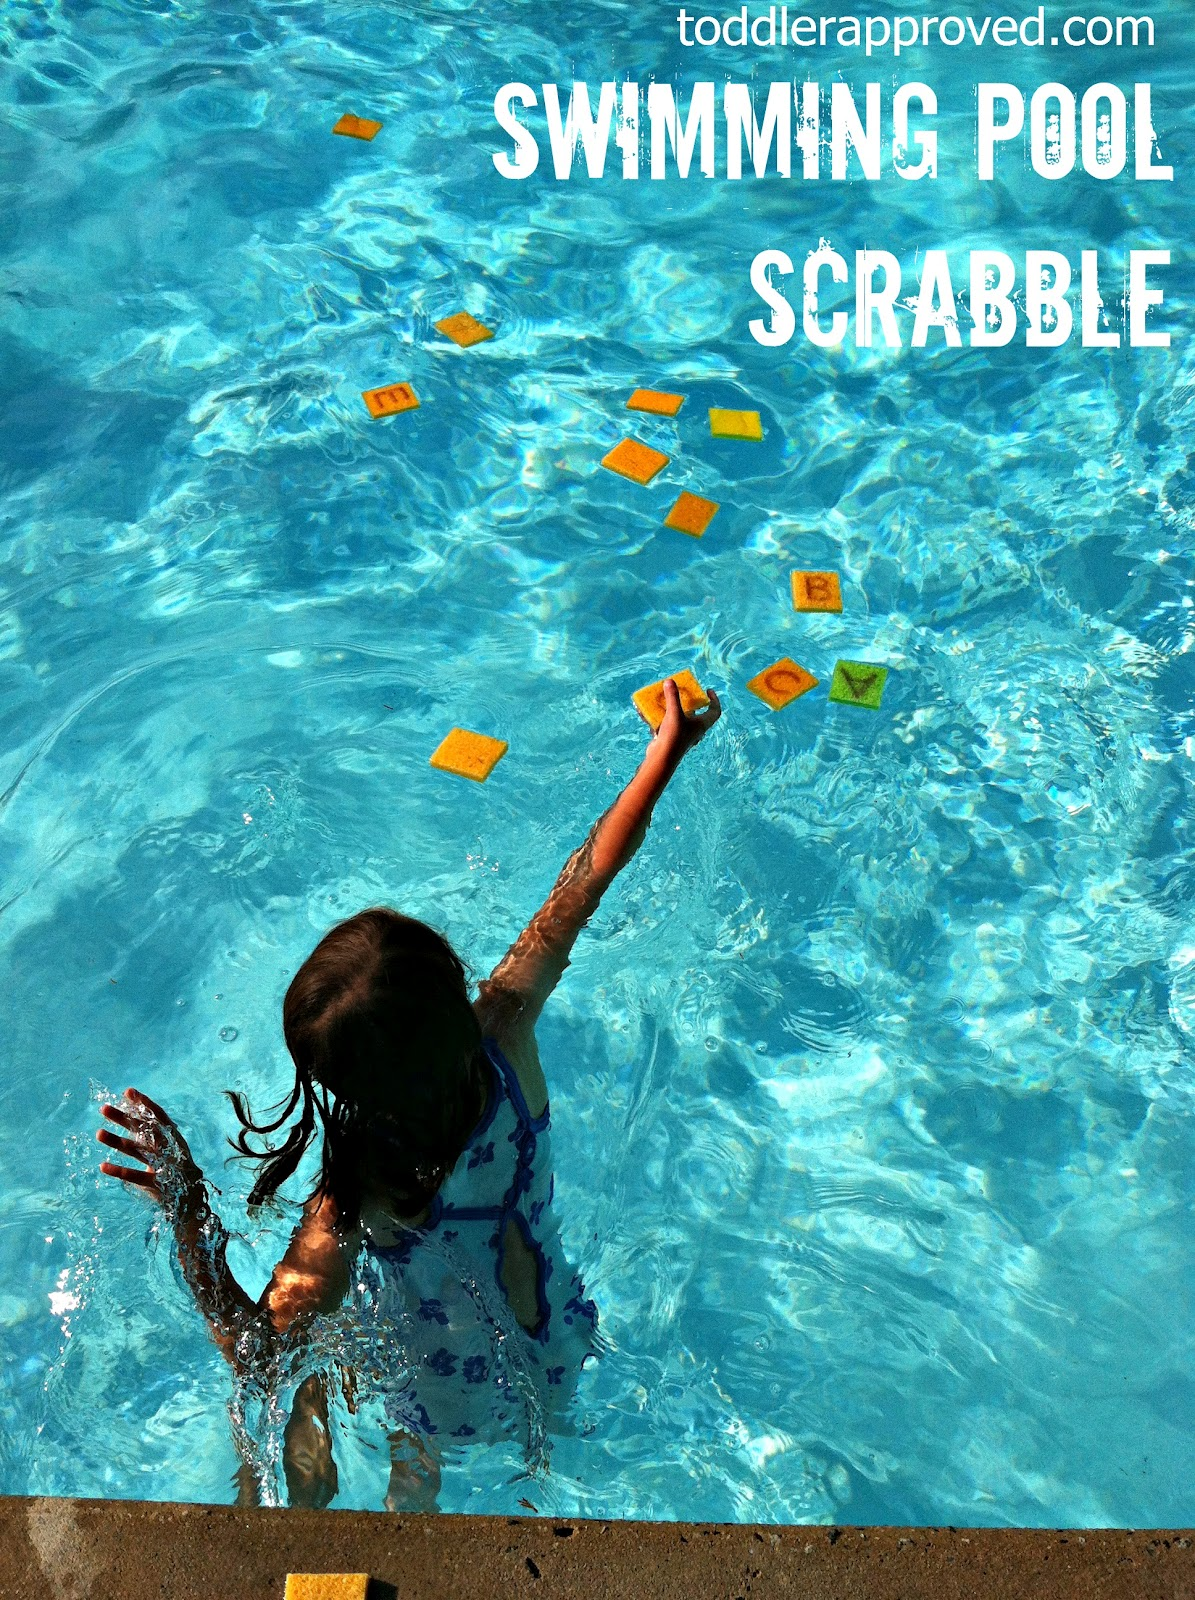 Toddler Approved Swimming Pool Scrabble